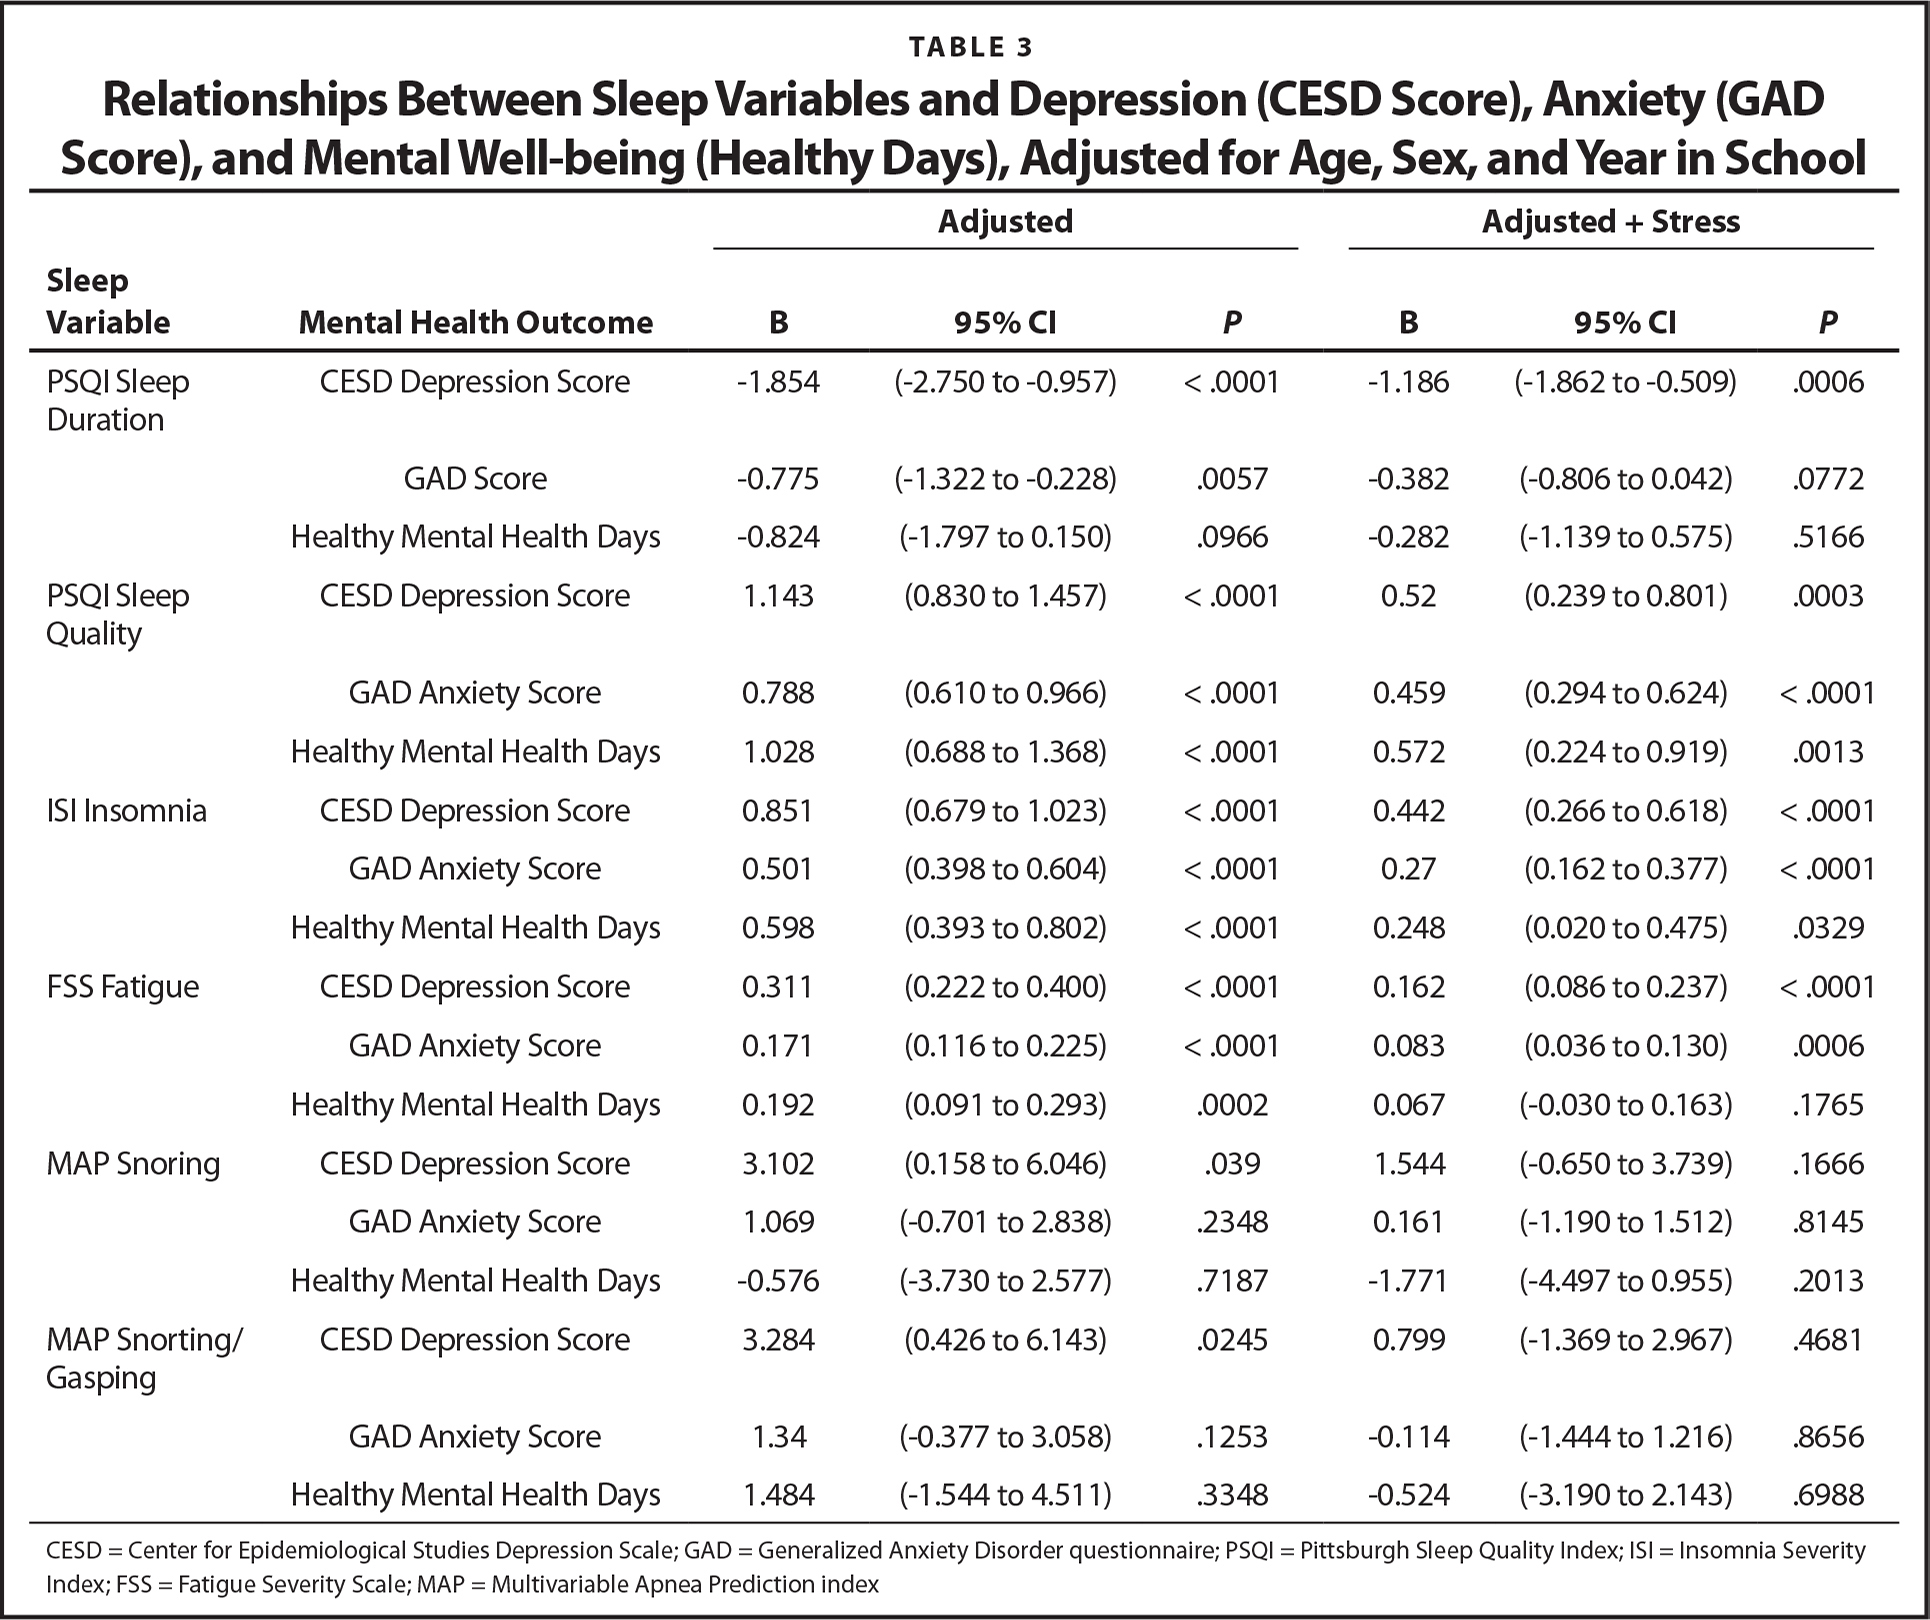 Relationships Between Sleep Variables and Depression (CESD Score), Anxiety (GAD Score), and Mental Well-being (Healthy Days), Adjusted for Age, Sex, and Year in School